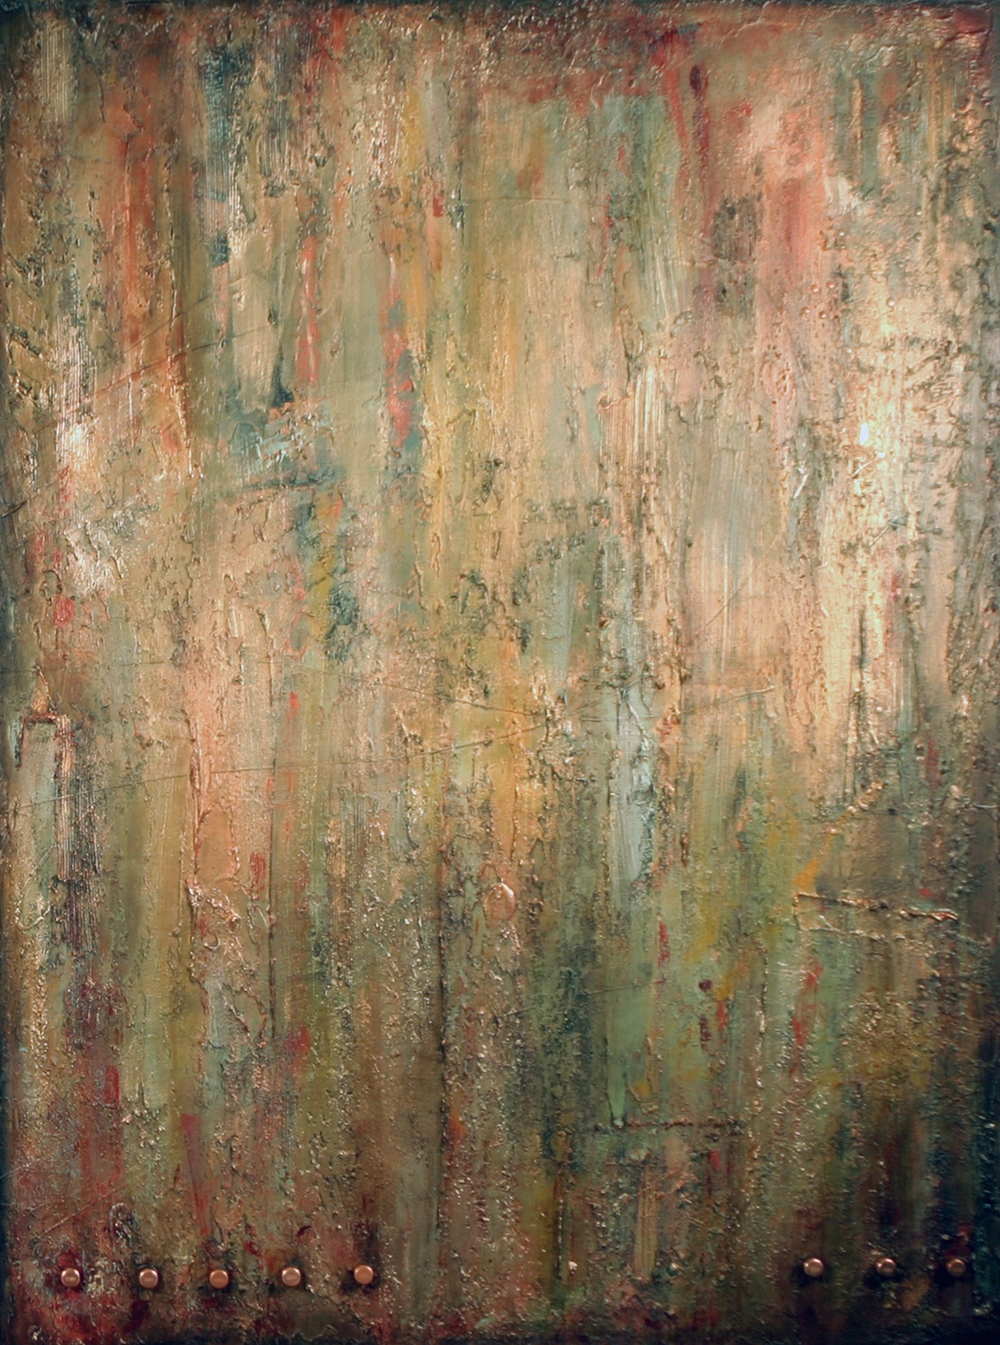 liberated spirits  48 x 36 x 1.5 inches  mixed media +copper on canvas  $4200 USD